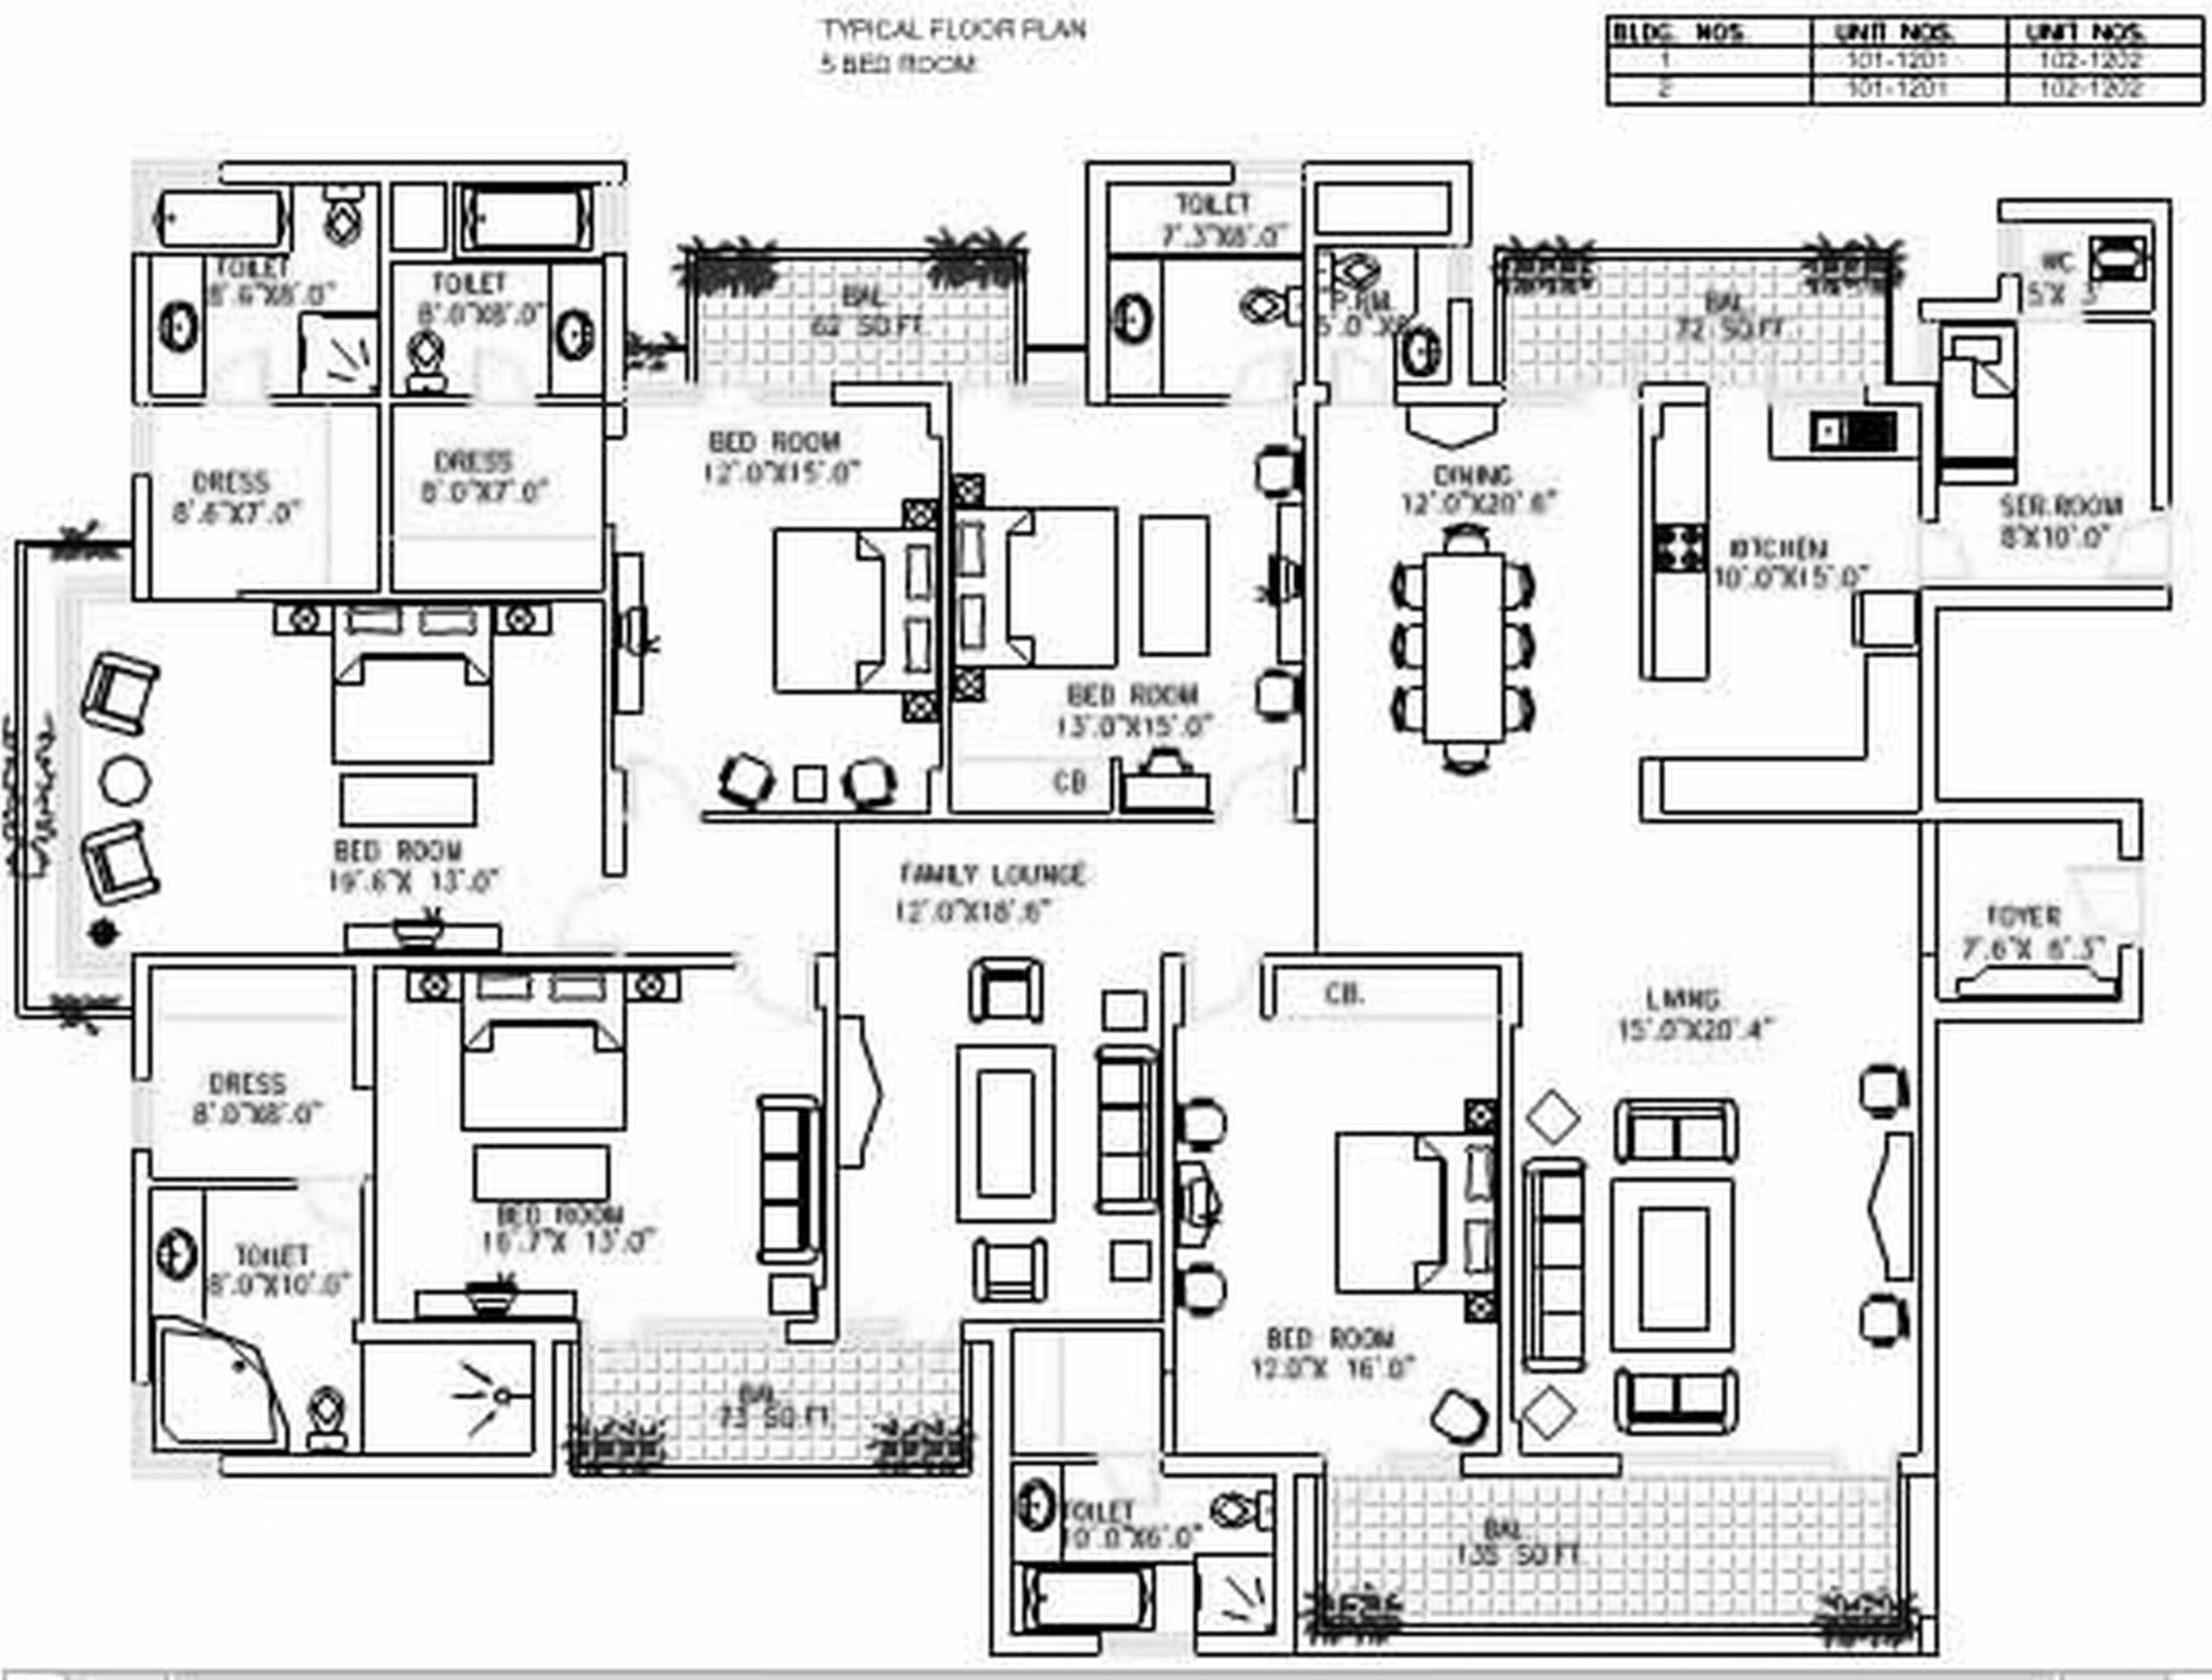 3 Bedroom Bungalow House Plans Uk  Mansion floor plan, House